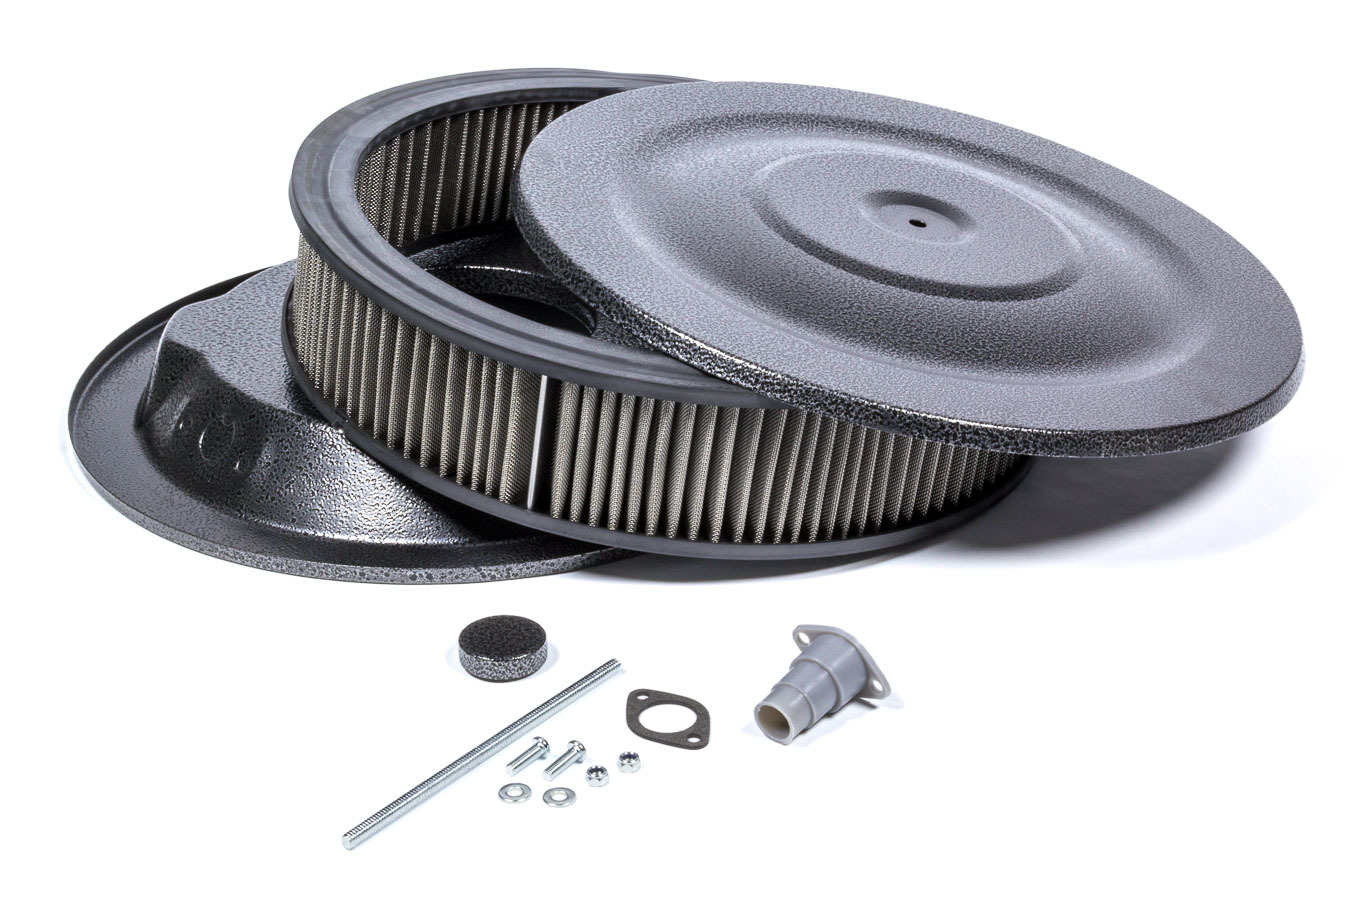 Mr Gasket 1411G Air Cleaner Assembly, Easy Flow, 14 in Round, 3 in Tall, 5-1/8 in Carb Flange, Drop Base, Steel, Silver Vein Powder Coat, Kit